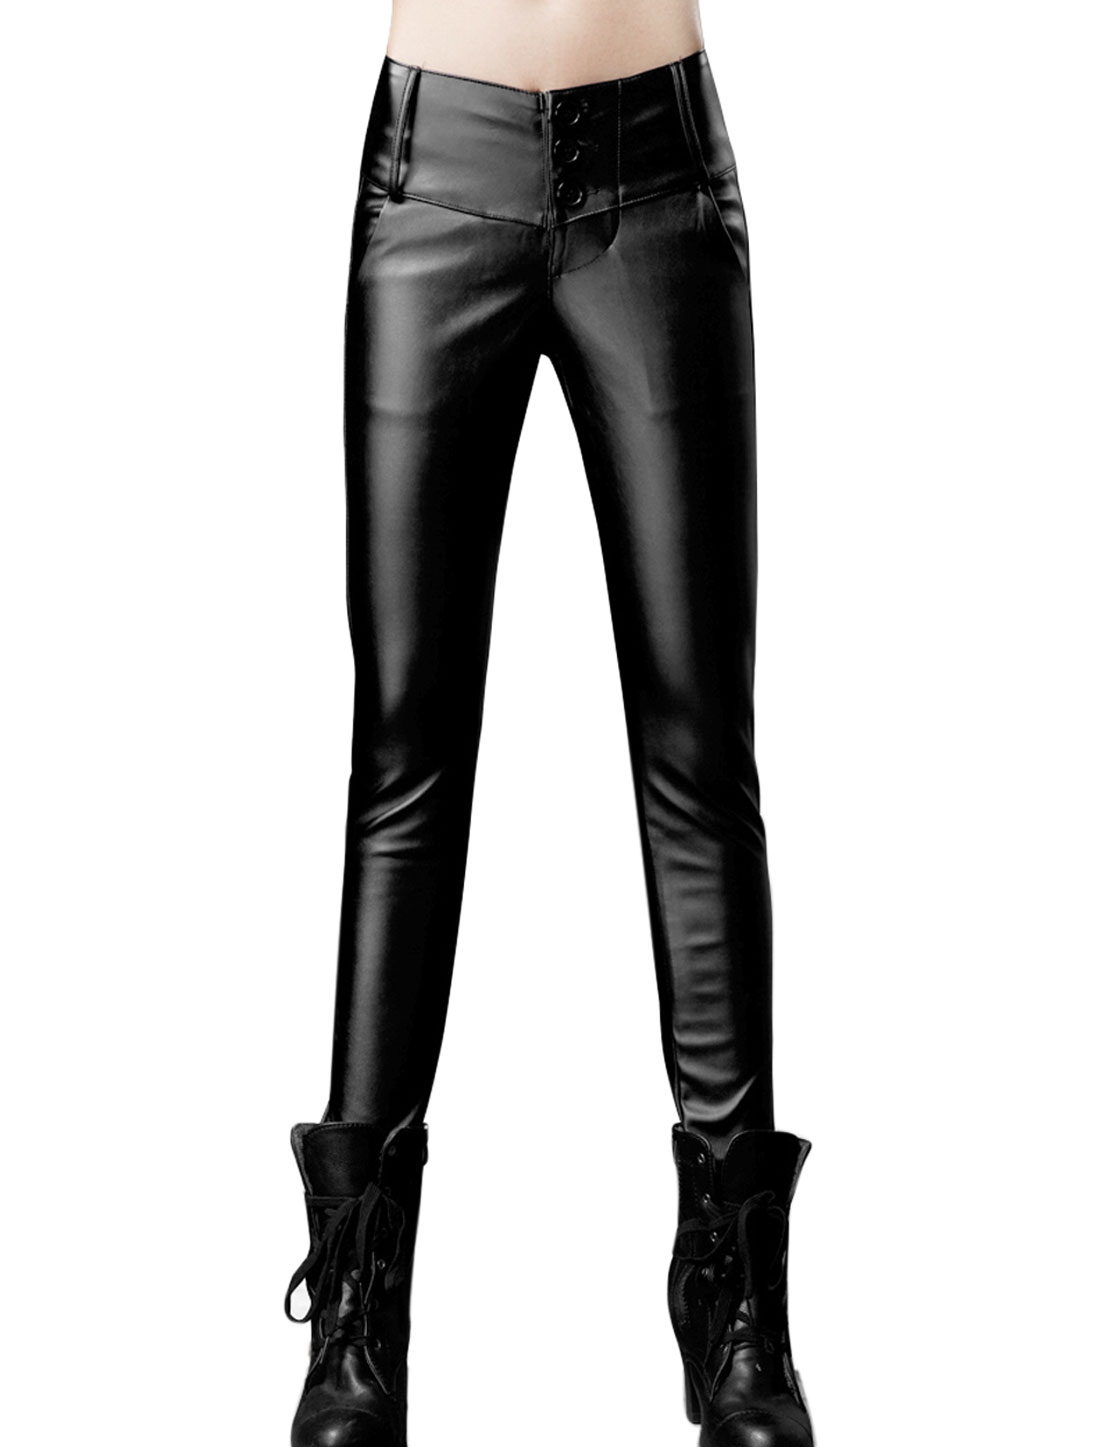 Lady High Wasit Wide Waistband Slim Fit Leisure Imitation Leather Pants Black XS